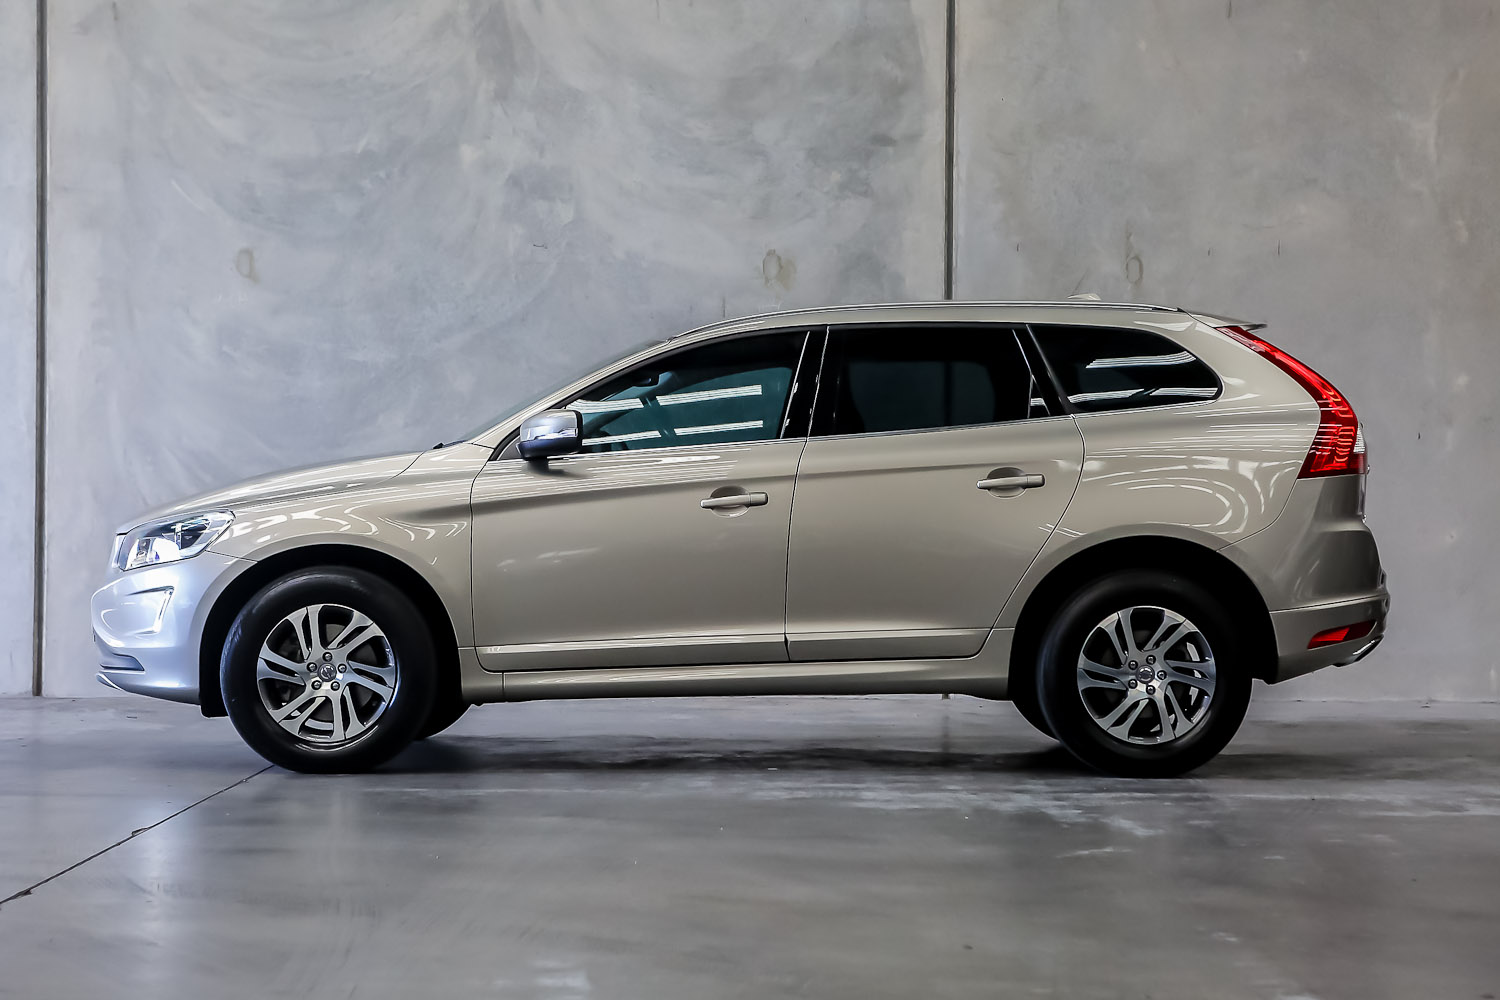 2014 Volvo XC60 5-Door Wagon | Carbar